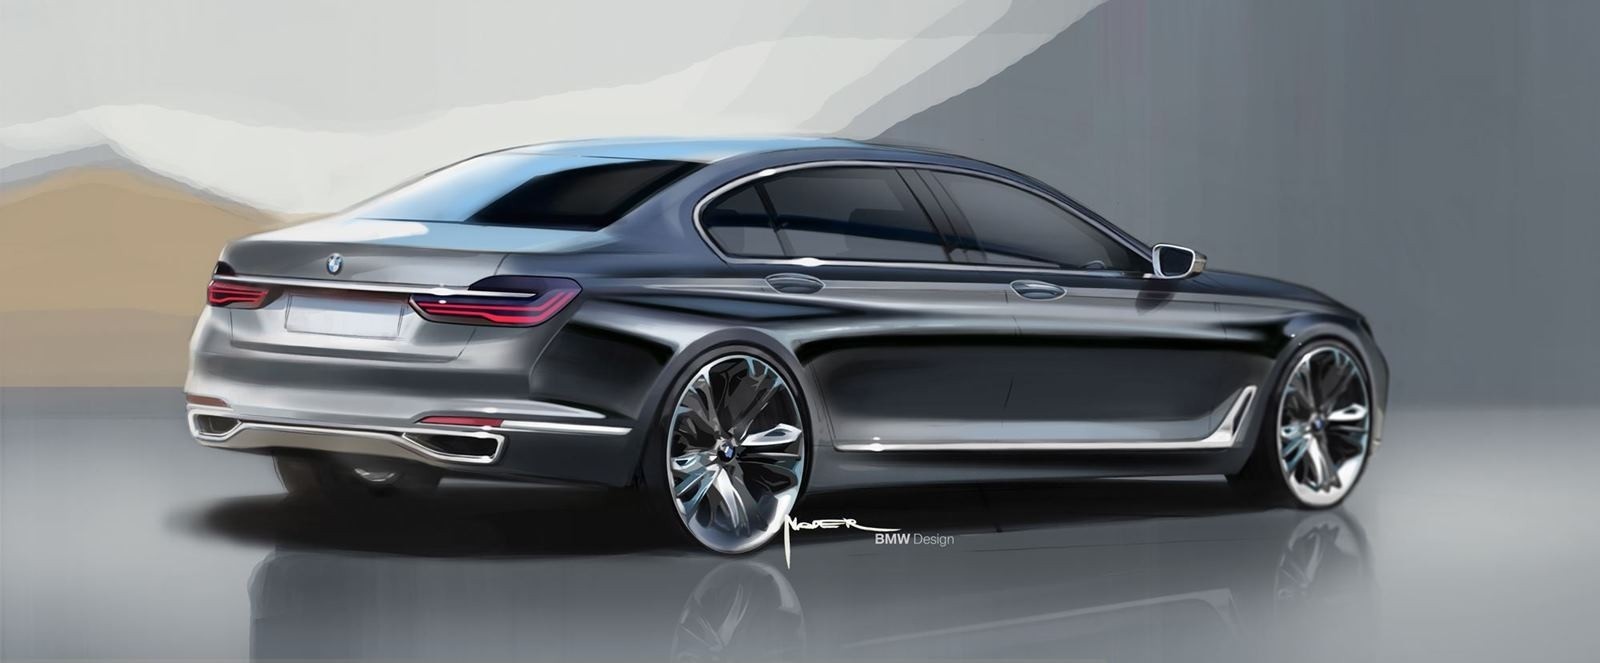 2016 BMW 750Li Launch Images 22